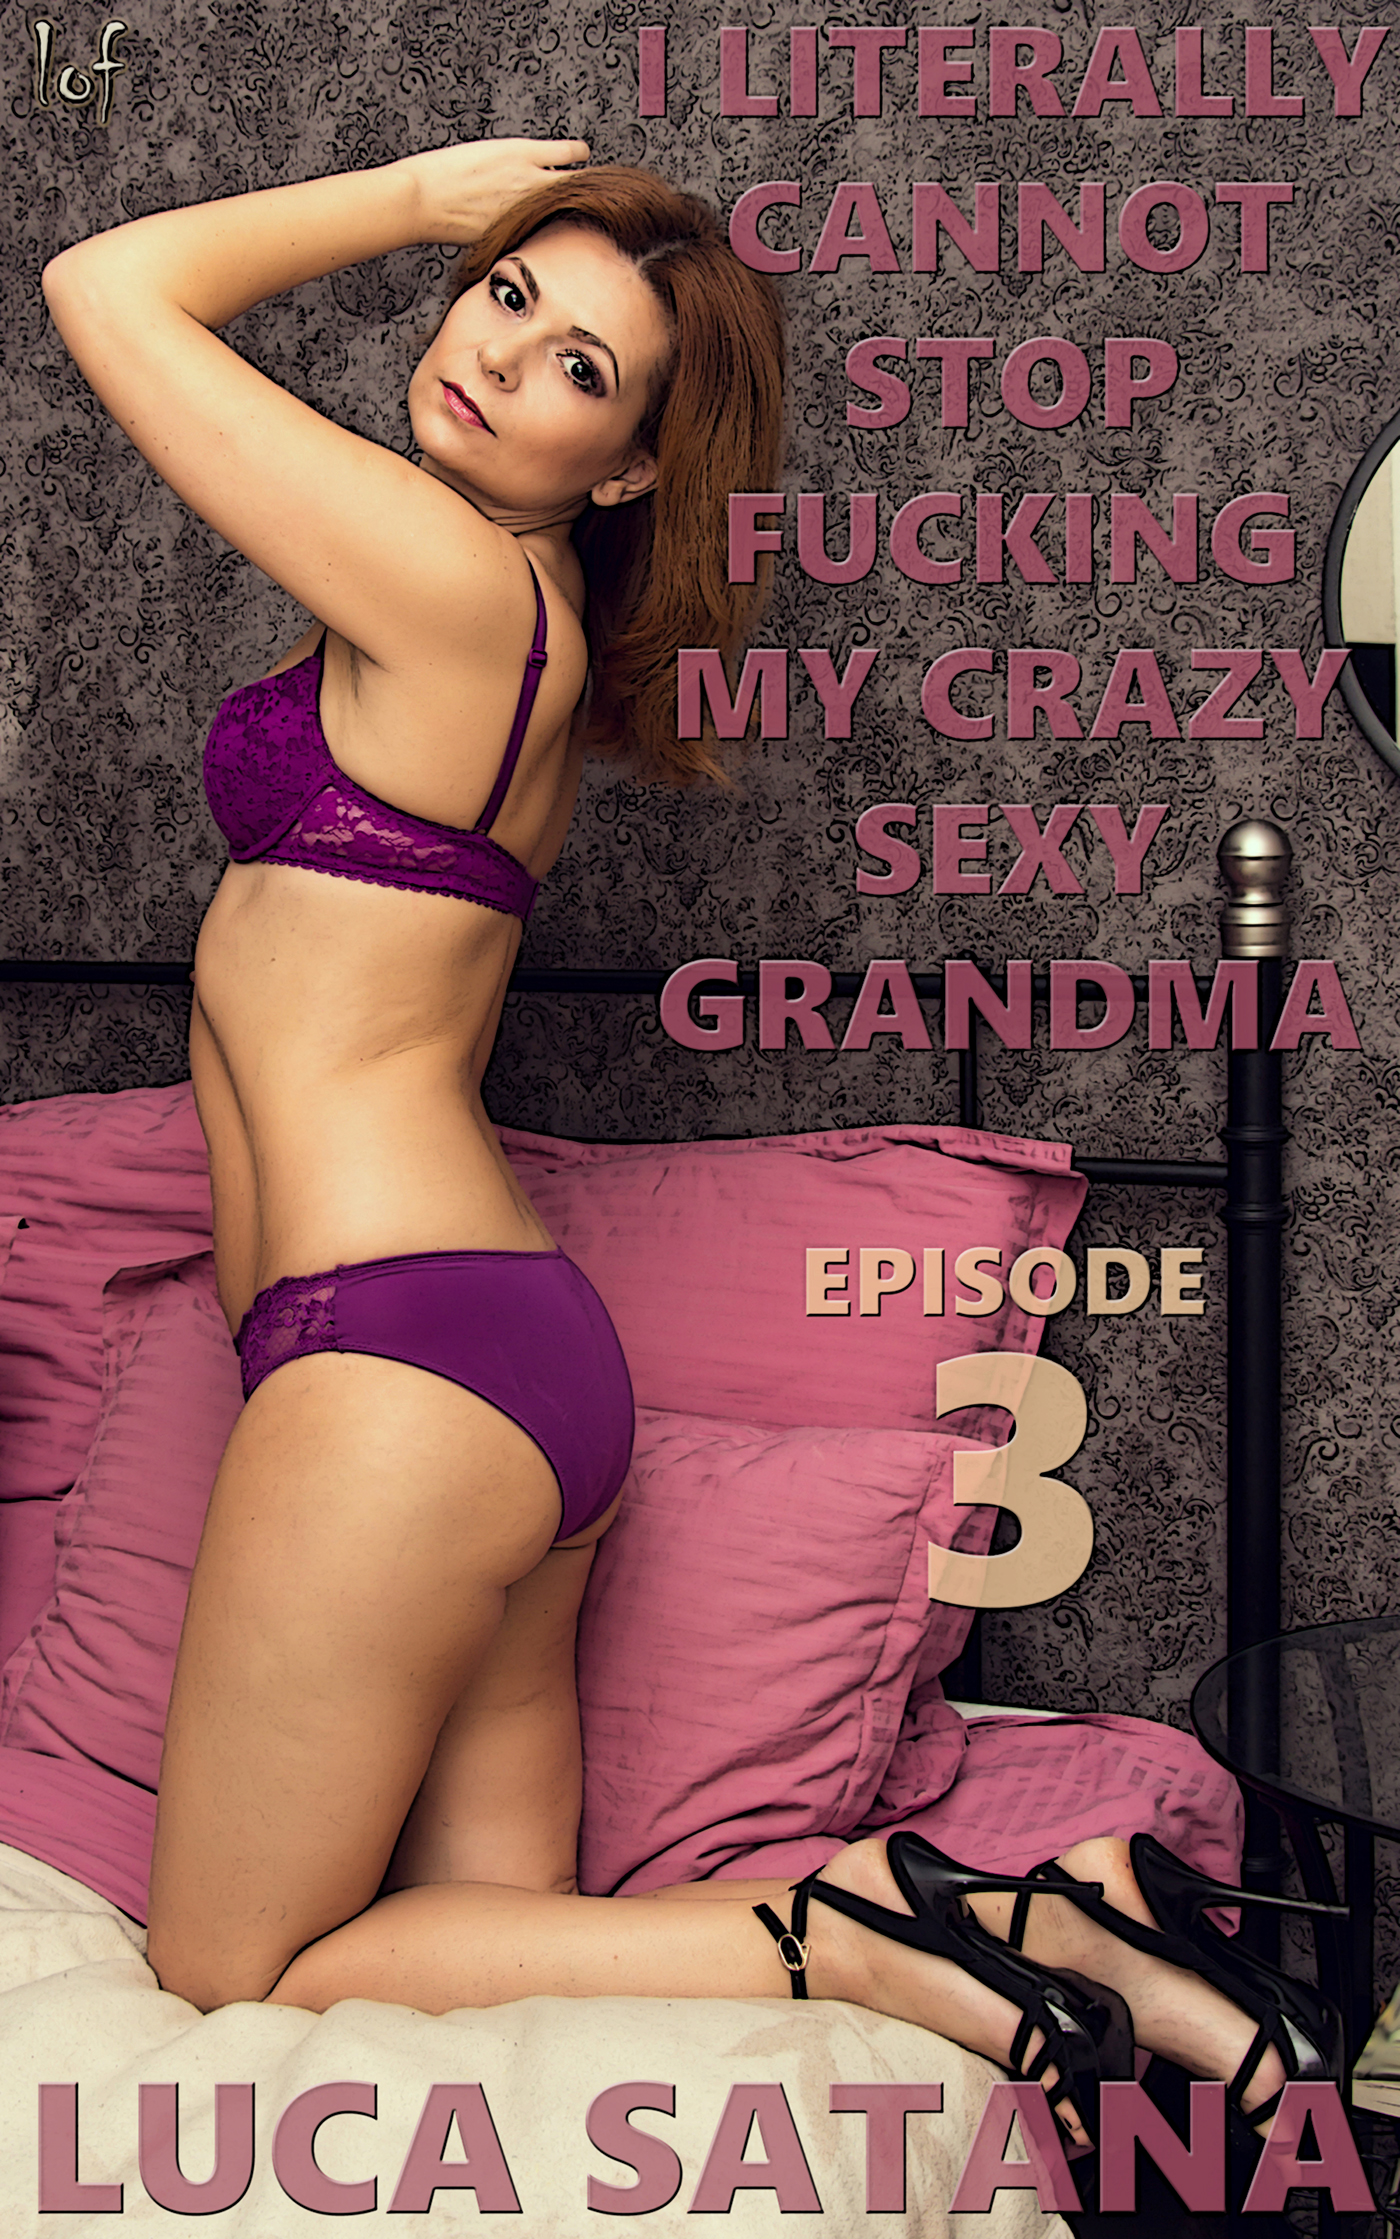 LOF New Release: I Literally Cannot Stop Fucking My Crazy Sexy Grandma: Episode 3